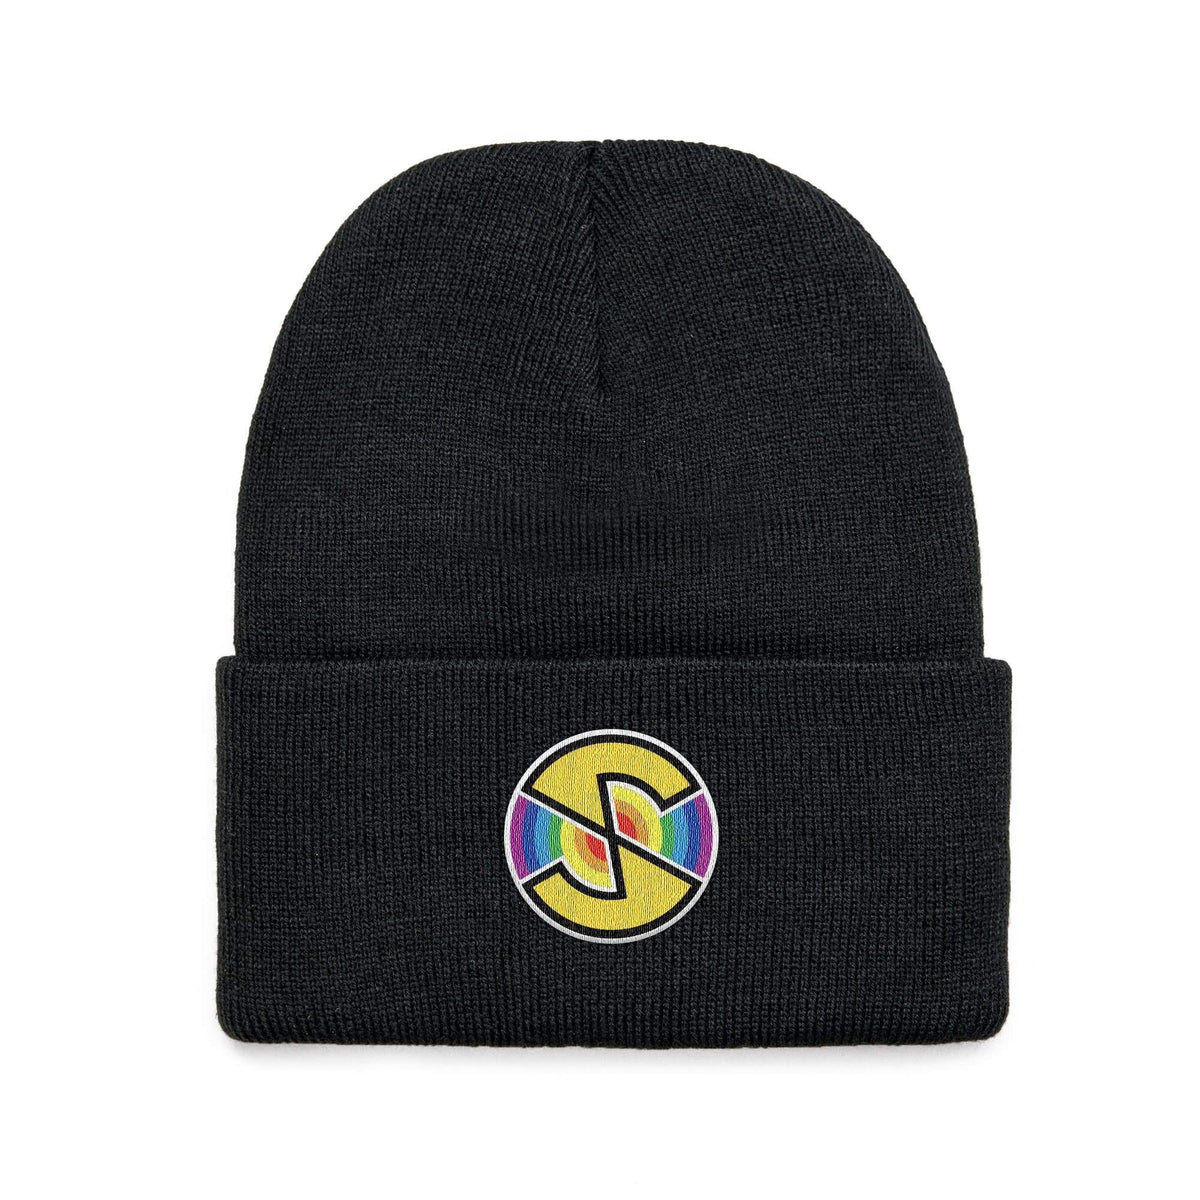 Captain Scarlet Spectrum Beanie (Wooly hat) [Official & Exclusive] - The Gerry Anderson Store